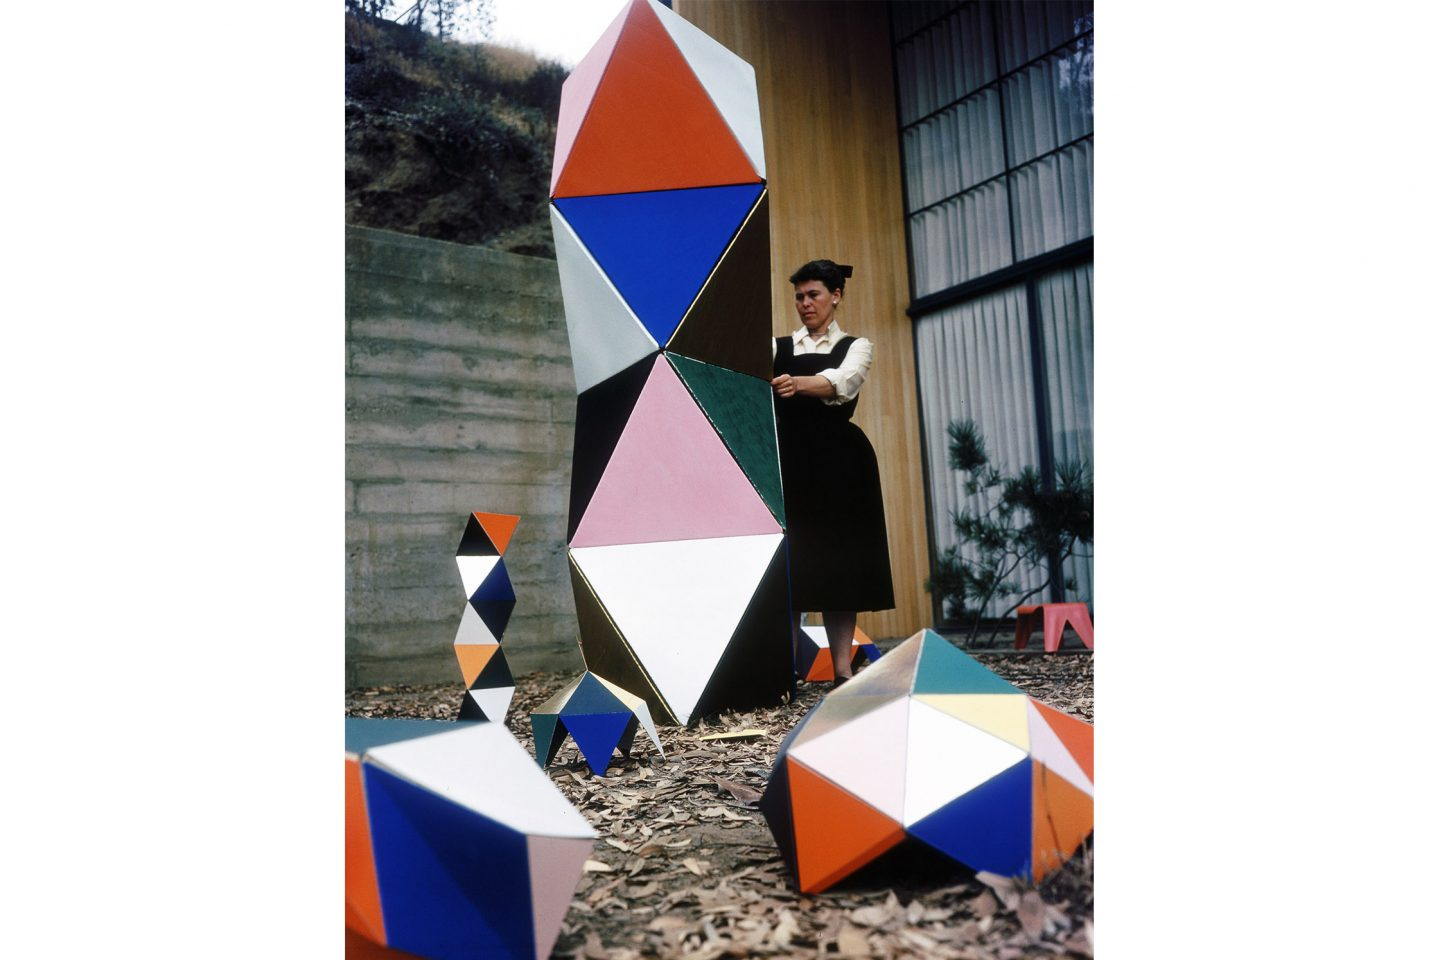 Ray Eames with an early prototype of The Toy in the patio of the Eames House, 1950. ∏ Eames Office LLC